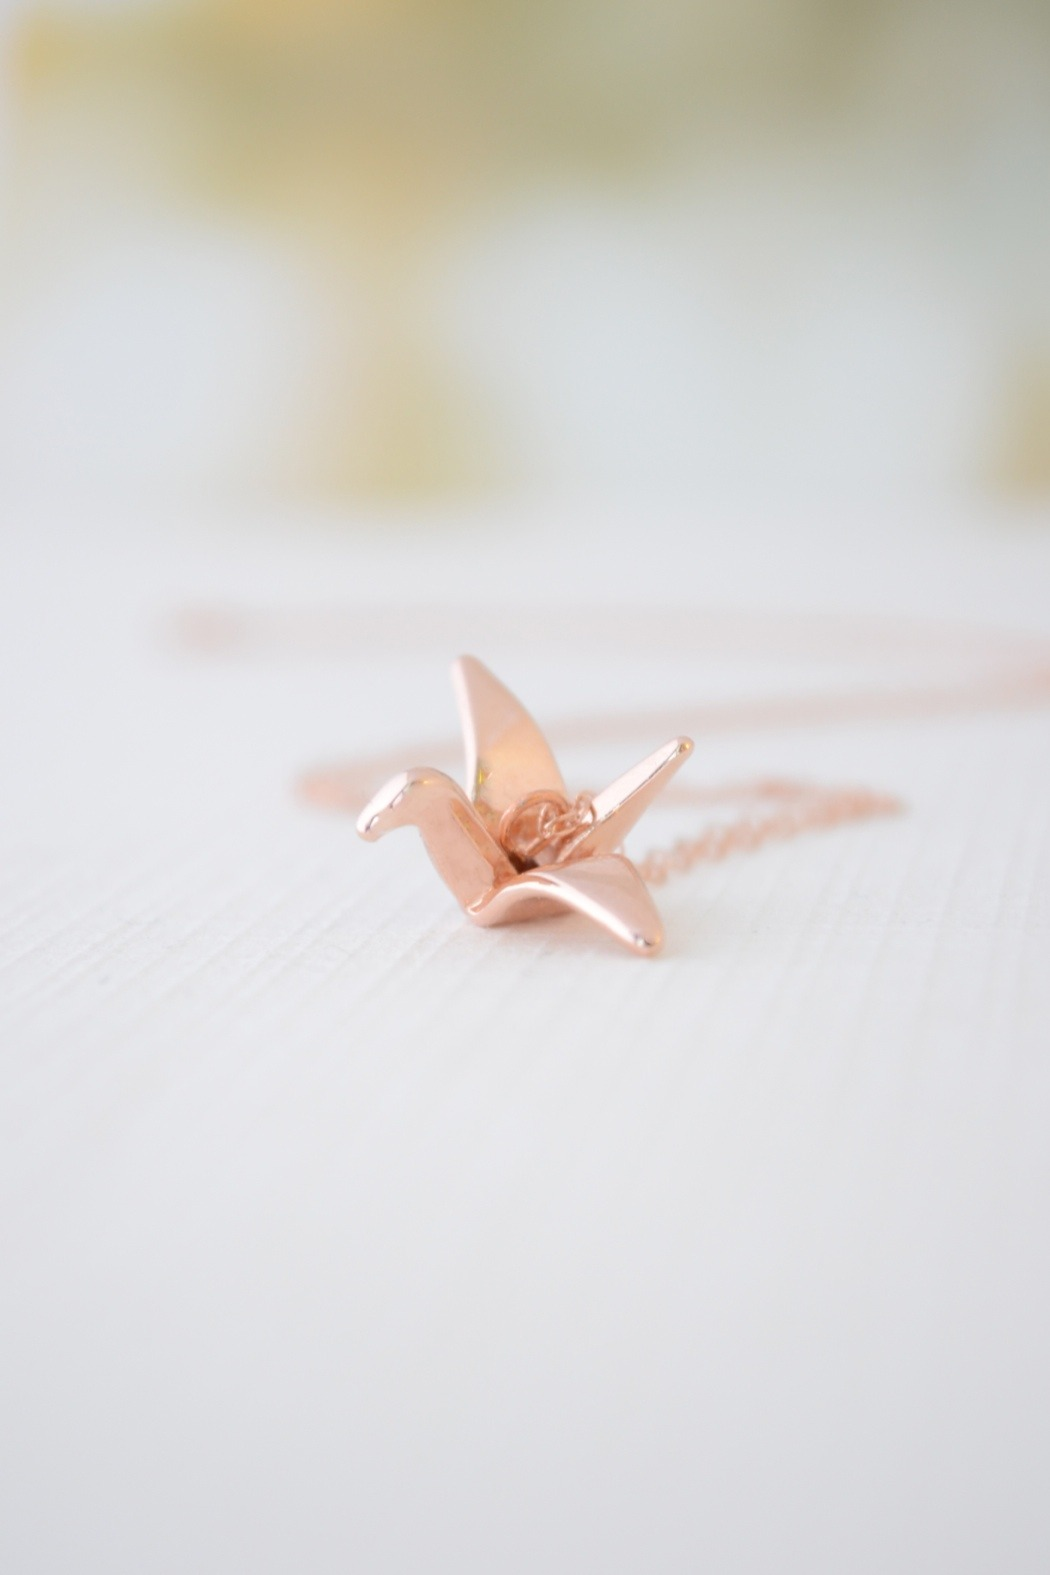 Olive Yew Origami Crane Necklace from North Carolina ... - photo#40